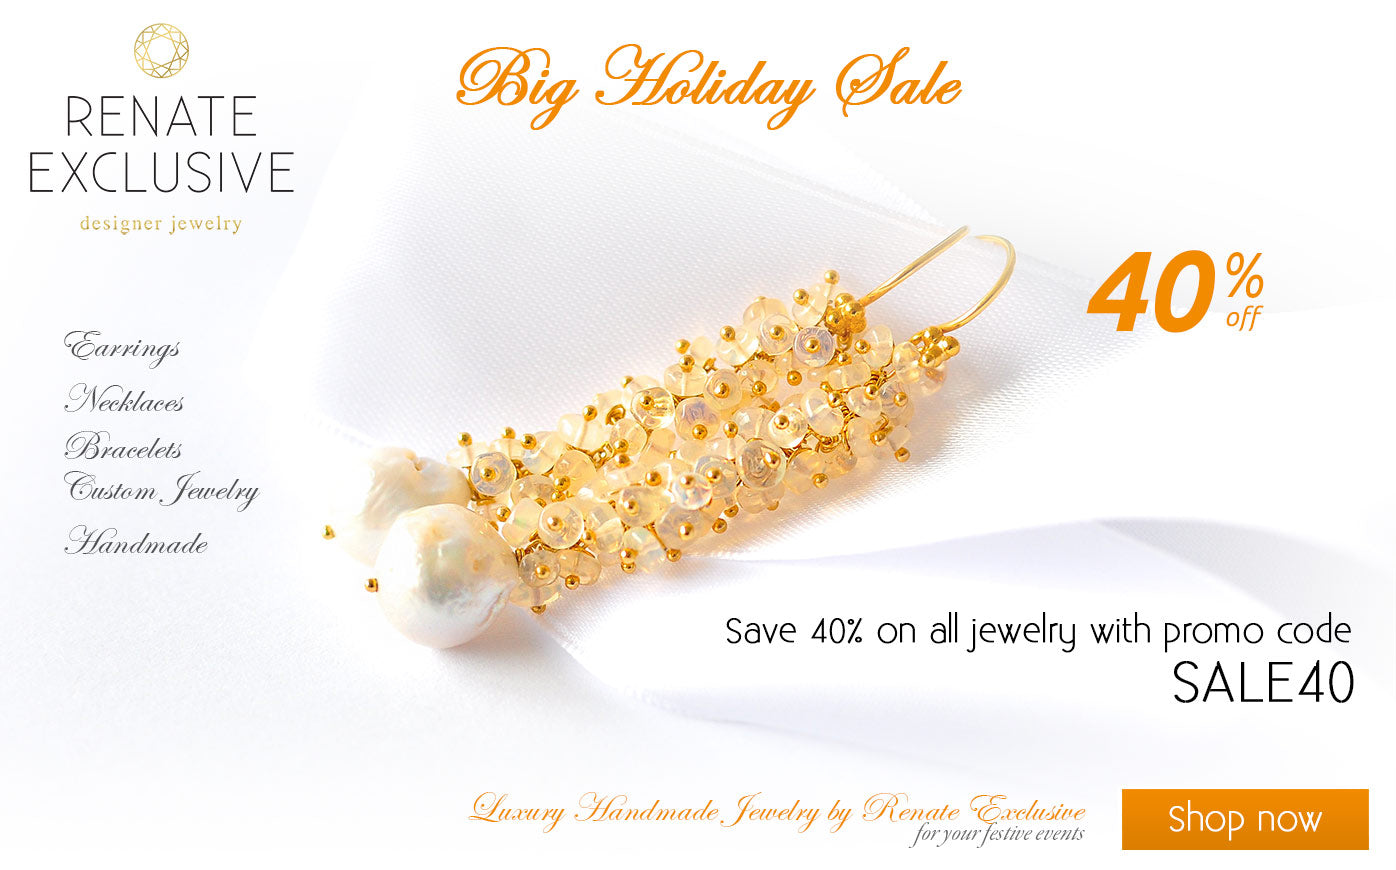 Handmade Jewelry Holiday Sale - Save 40%